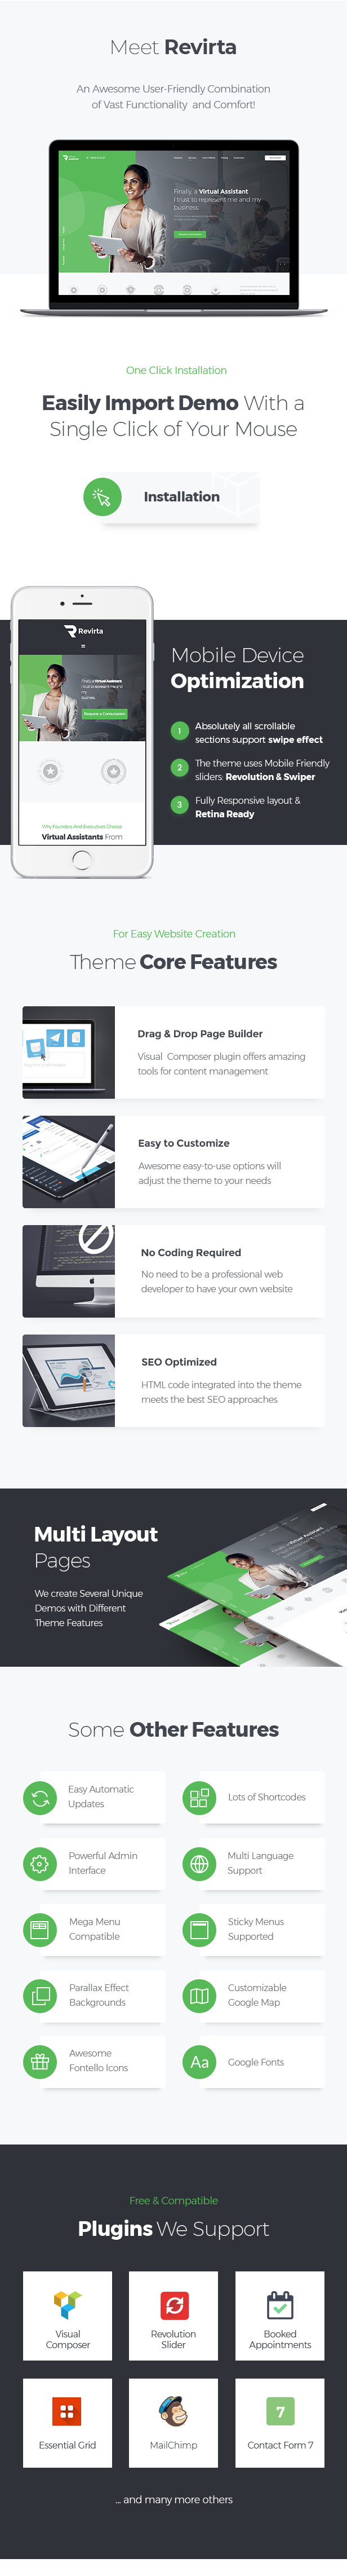 Revirta | Virtual Assistant WordPress Theme - 2